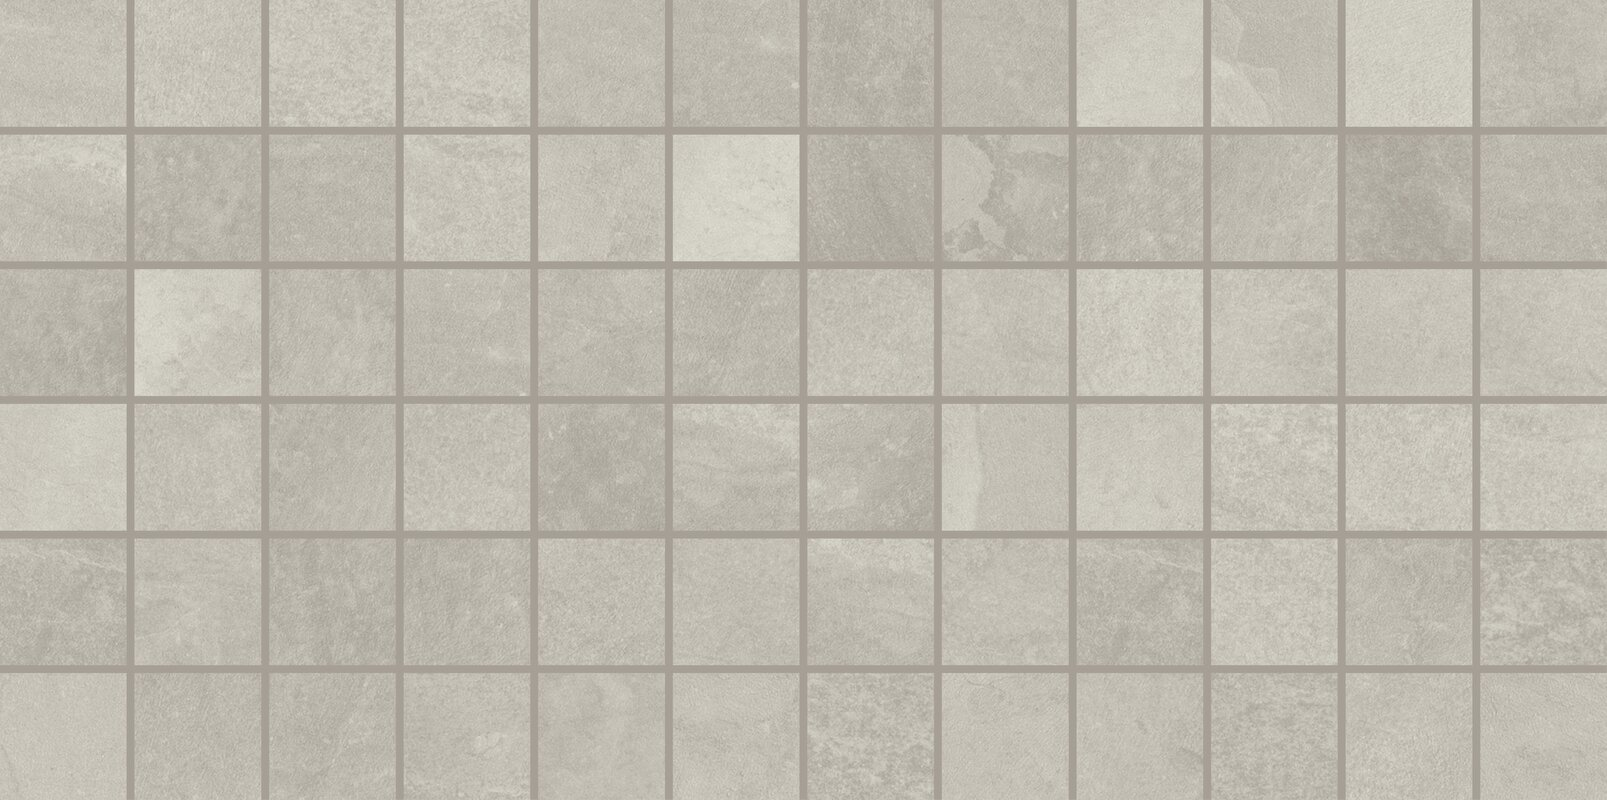 Daltile slate attache 12 x 24 porcelain mosaic tile in meta slate attache 12 x 24 porcelain mosaic tile in meta light gray dailygadgetfo Choice Image